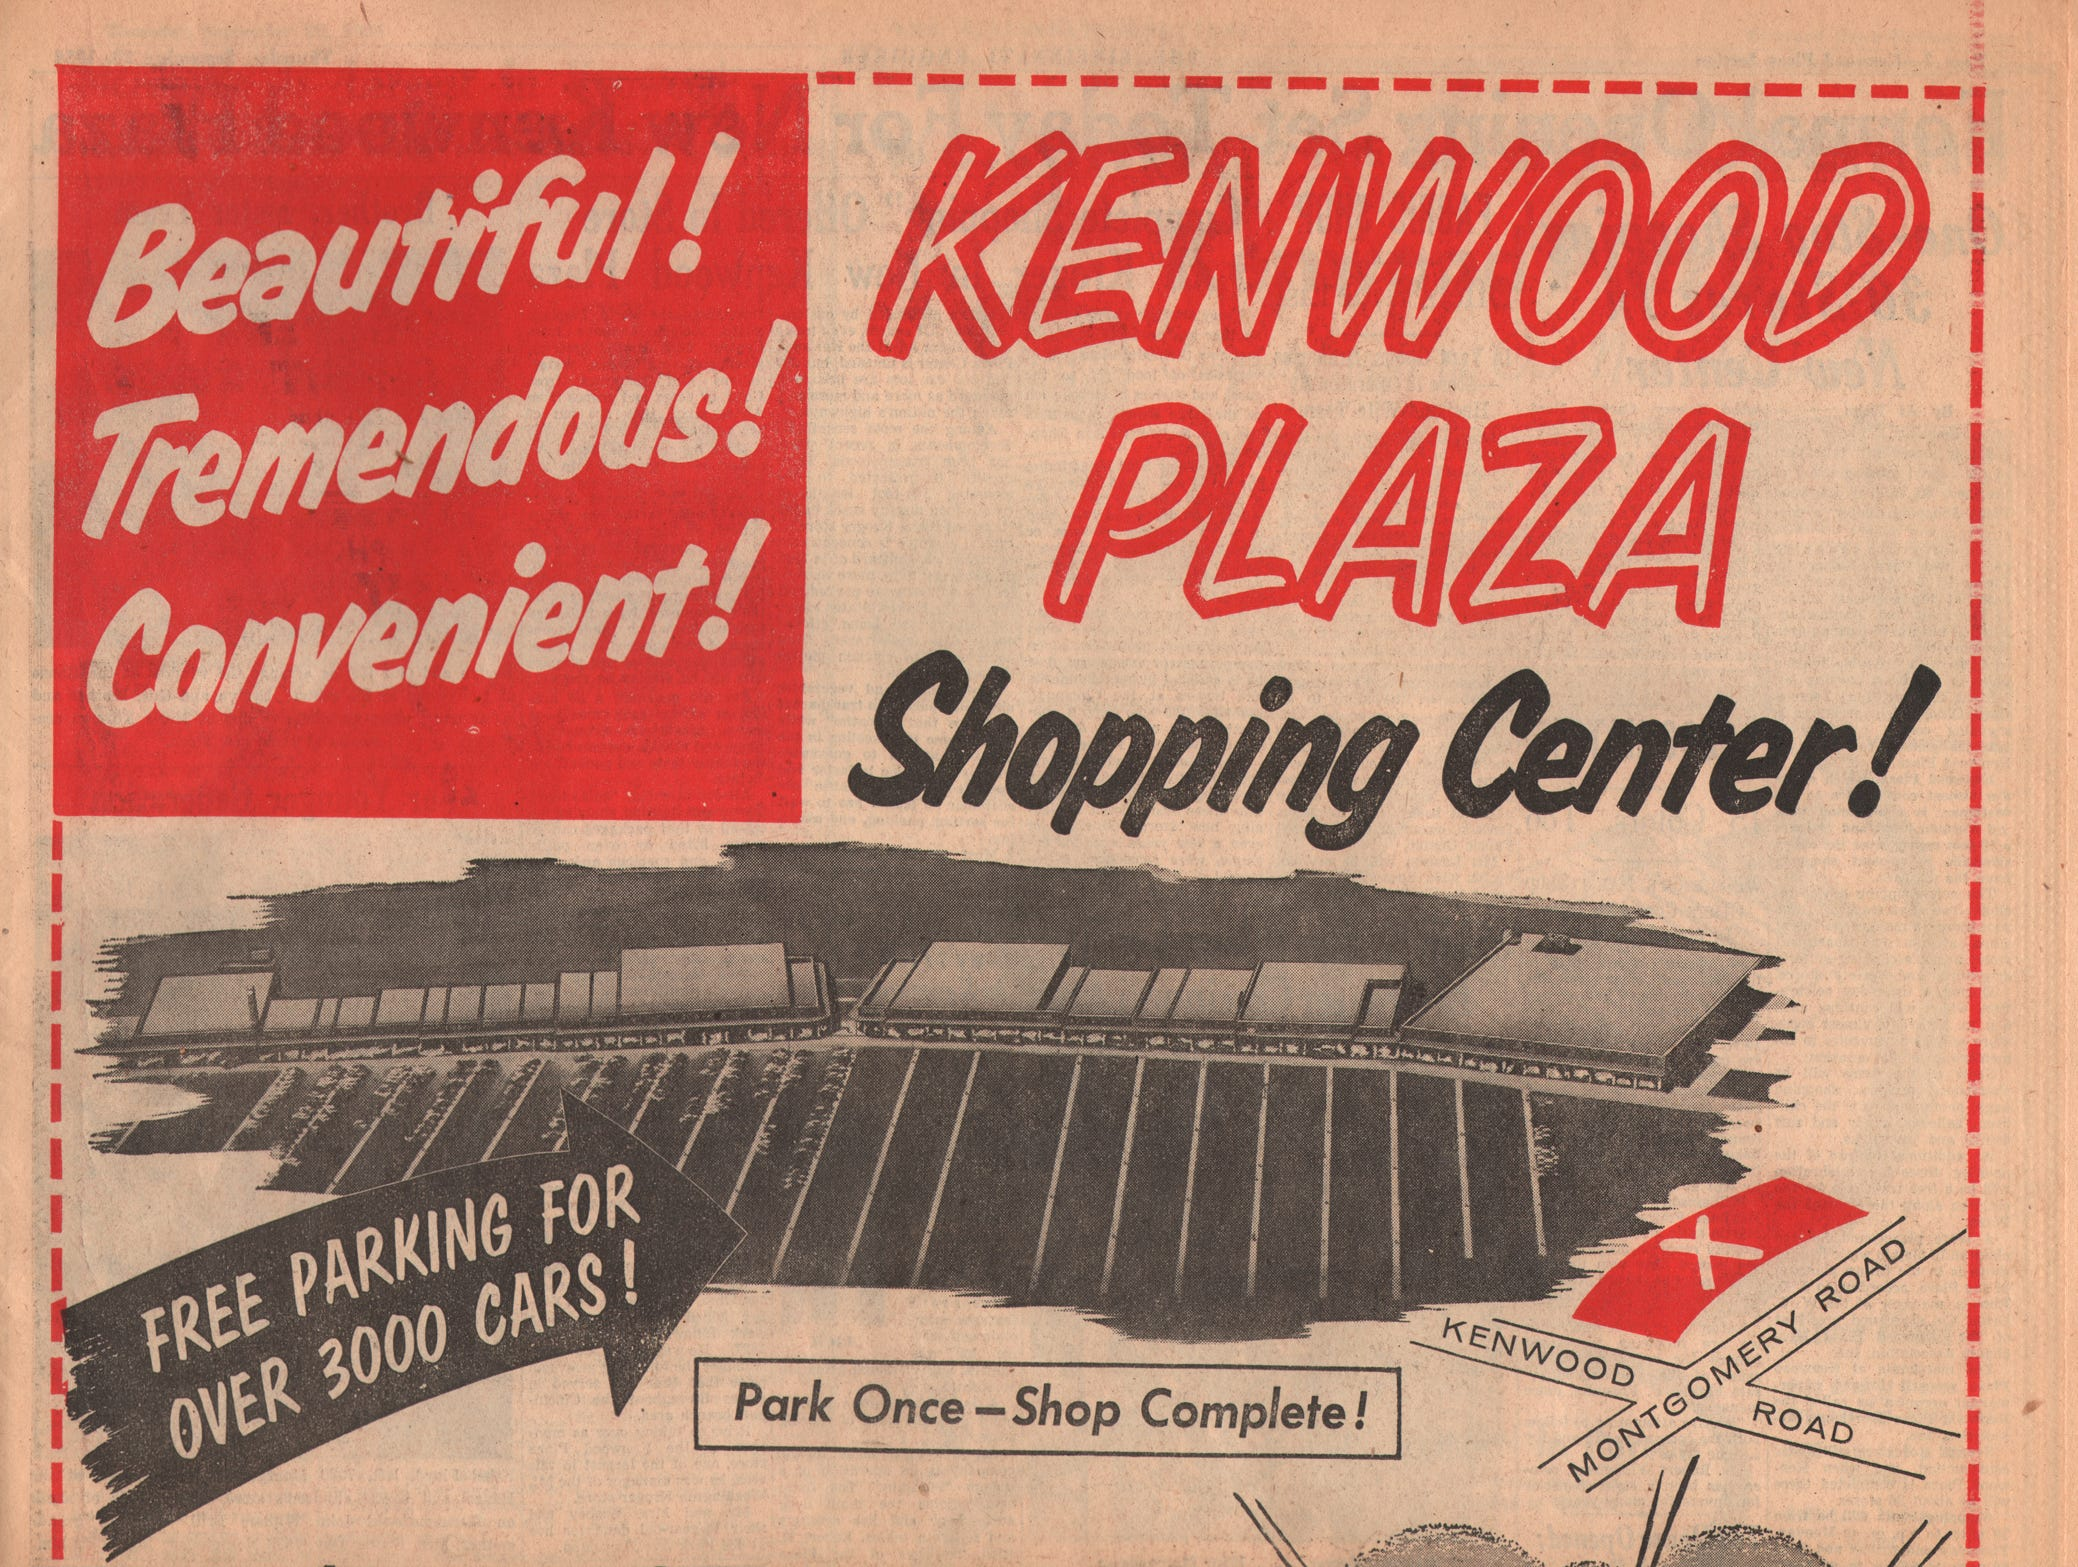 Enquirer ad for the grand opening of Kenwood Plaza, now known as Kenwood Towne Mall.